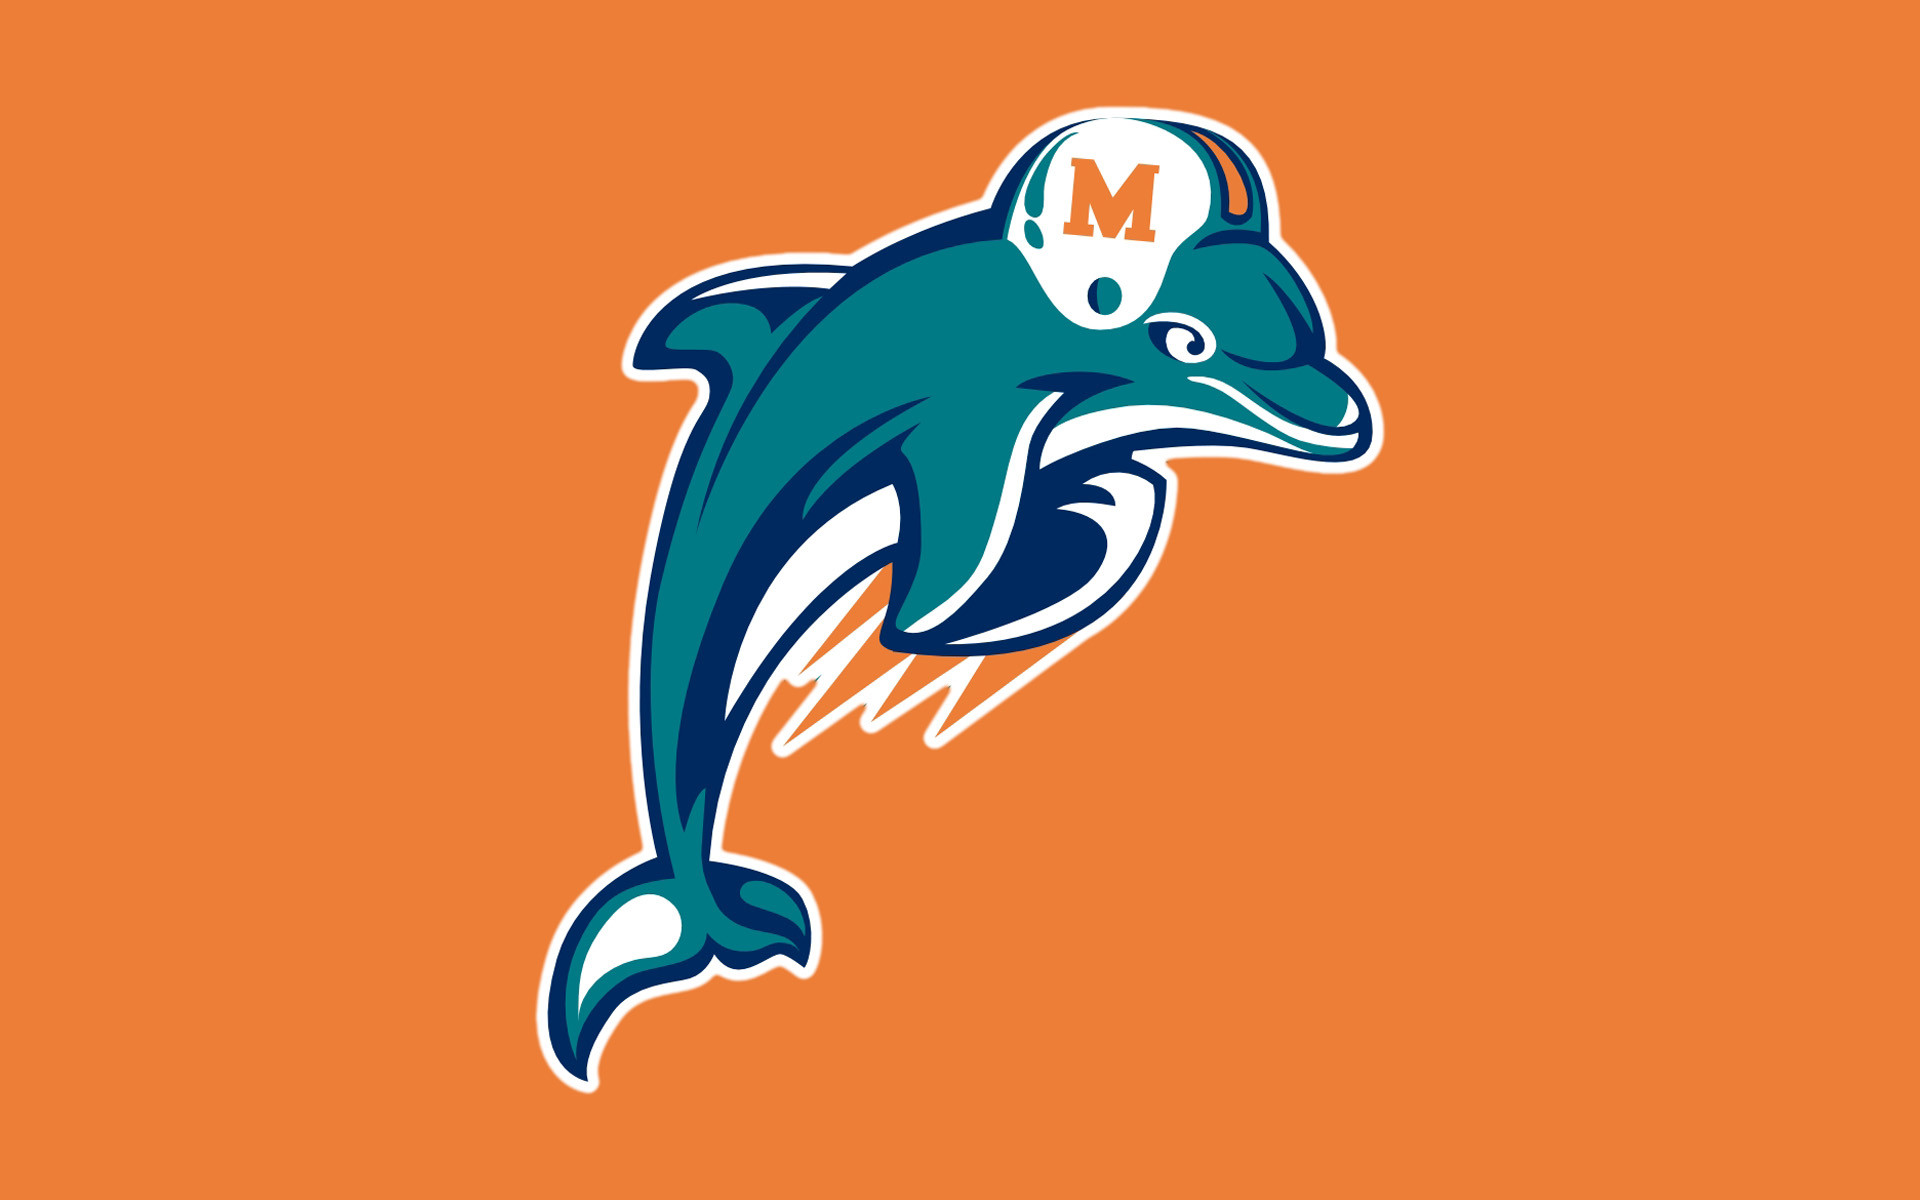 1920x1200 The Miami Dolphins are a professional American football team based in the  Miami metropolitan area.